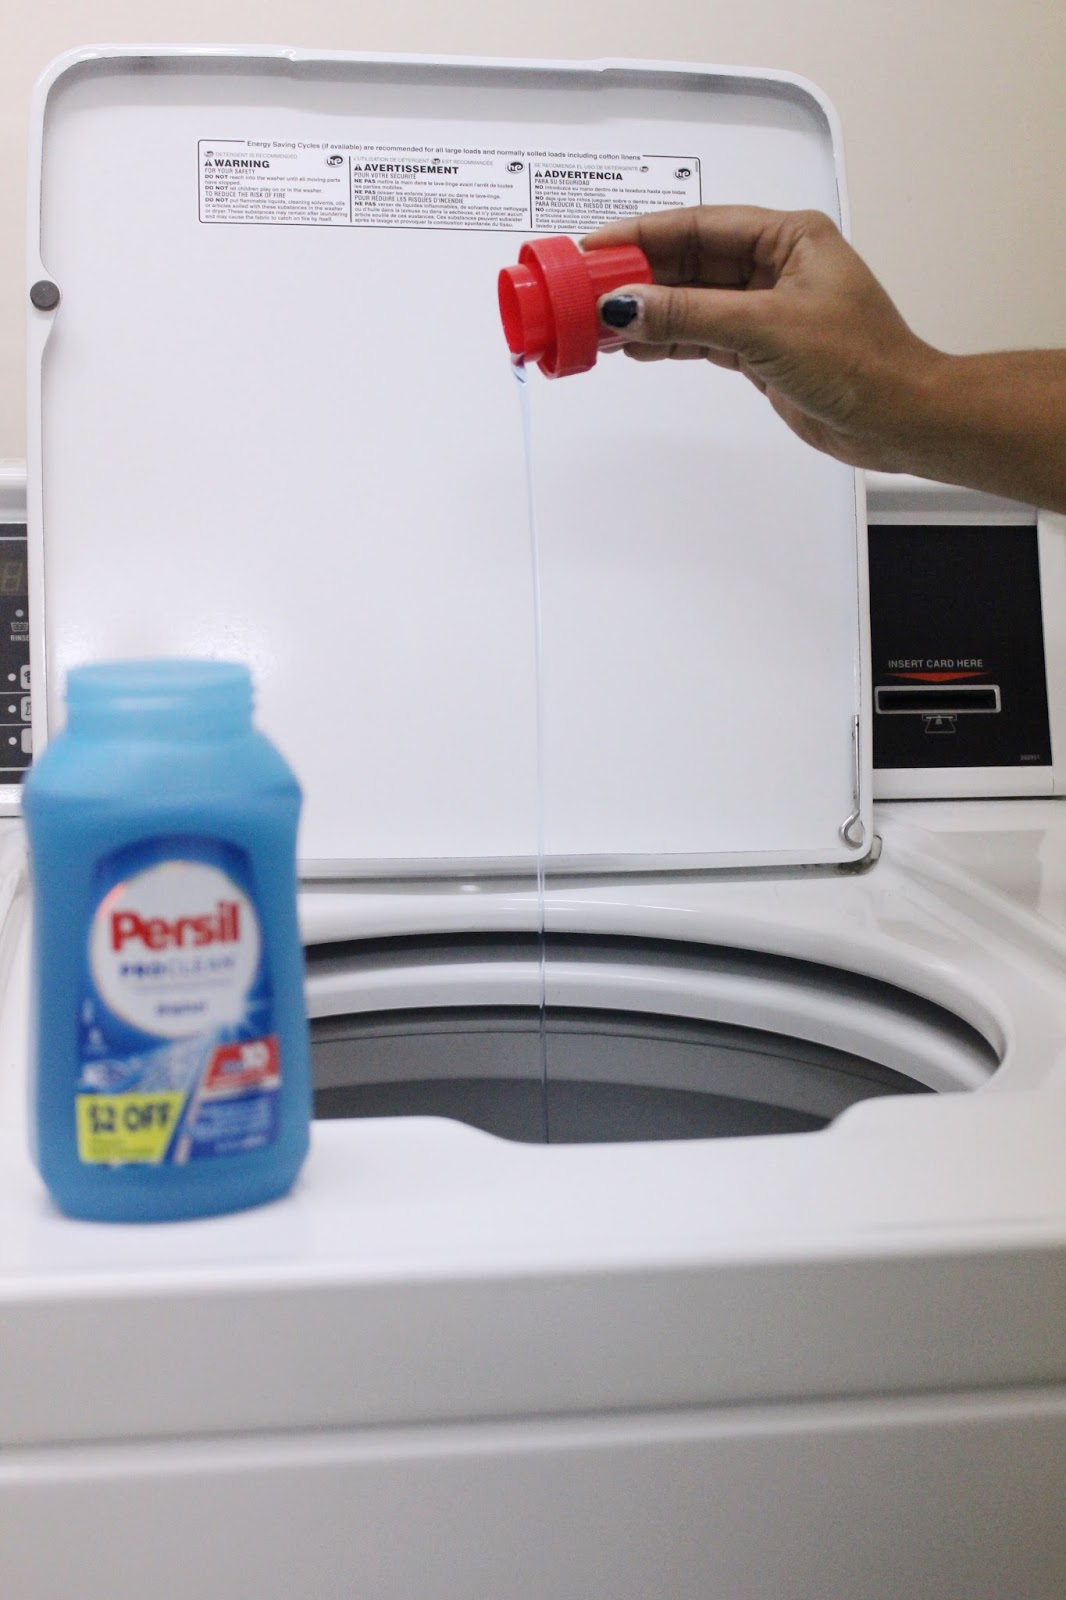 Tips On How To Keep Up With Your Laundry, Persil, Persil Target,  Persil pro clean, persil detergent, laundry piles, washing machine, laundry room, laundry basket